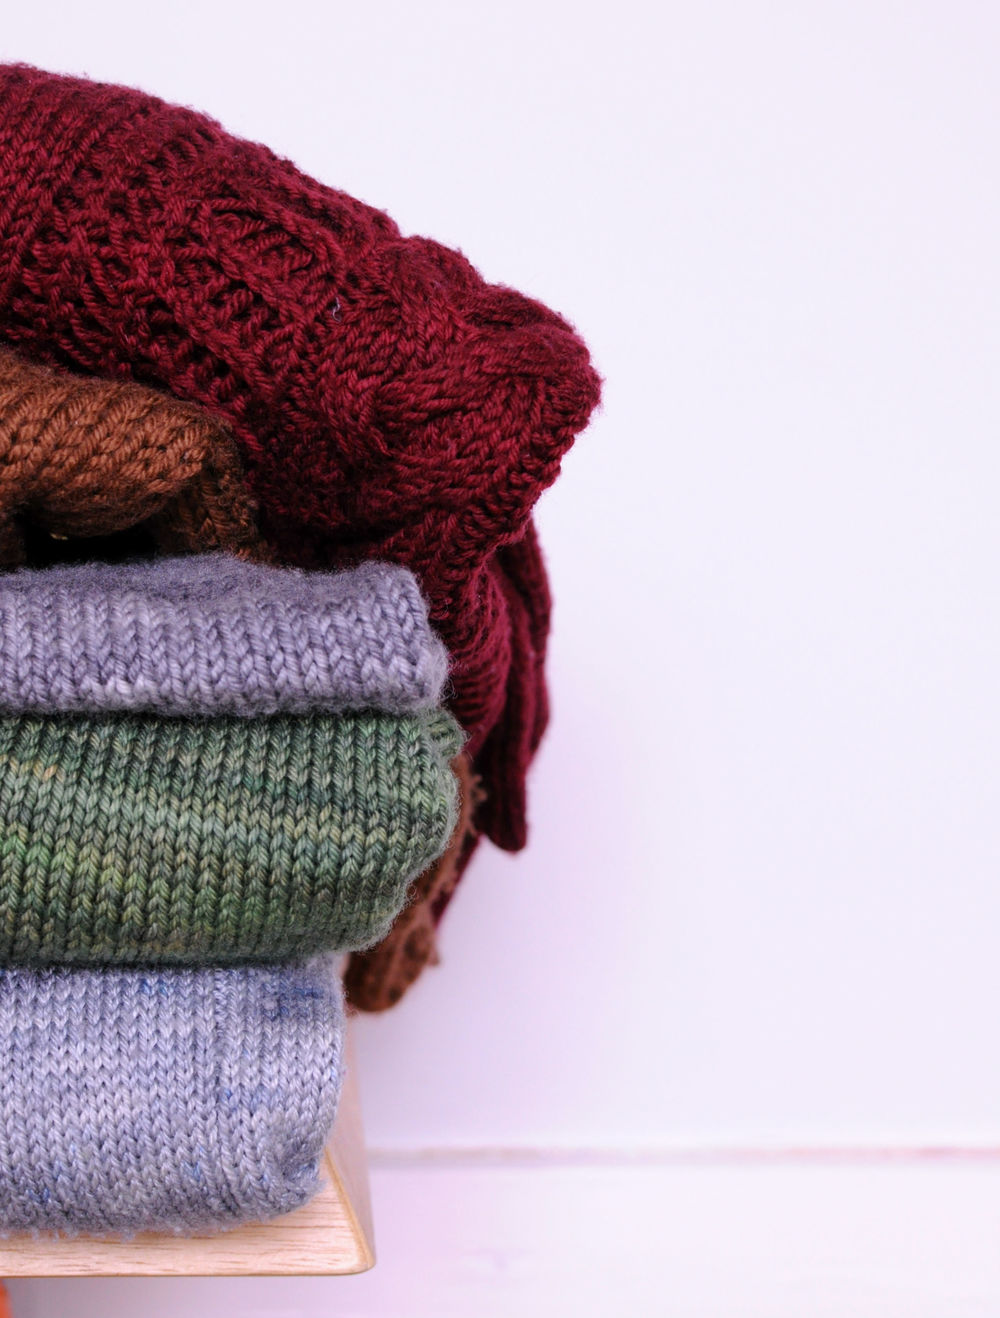 A small and very loved pile of knitwear